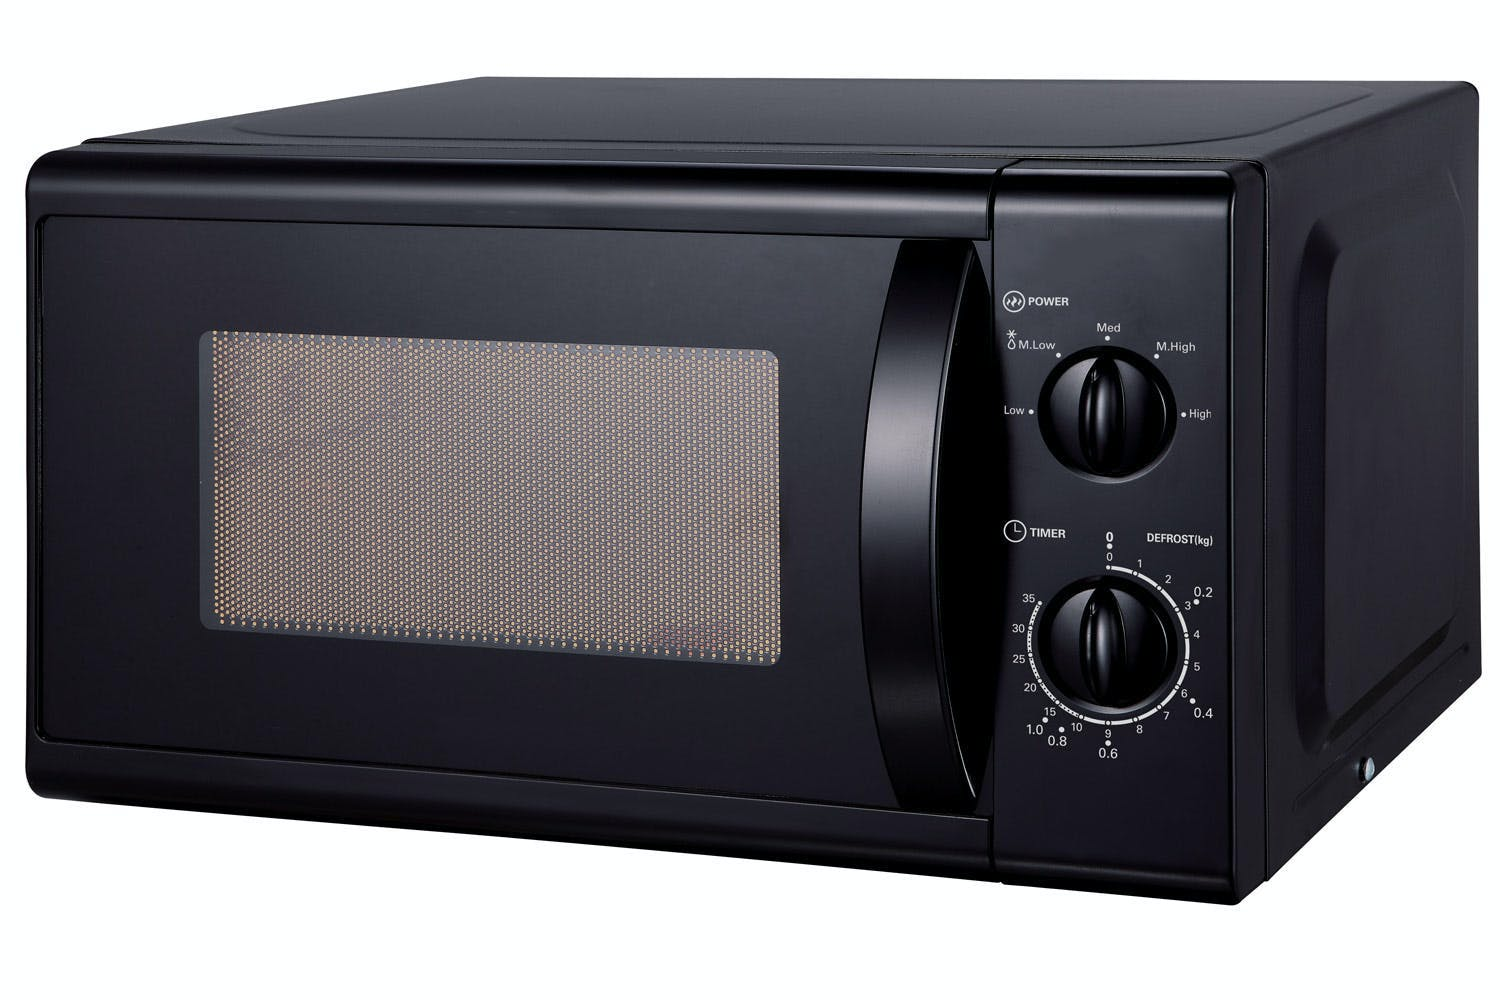 Left Hand Opening Microwave Bestmicrowave